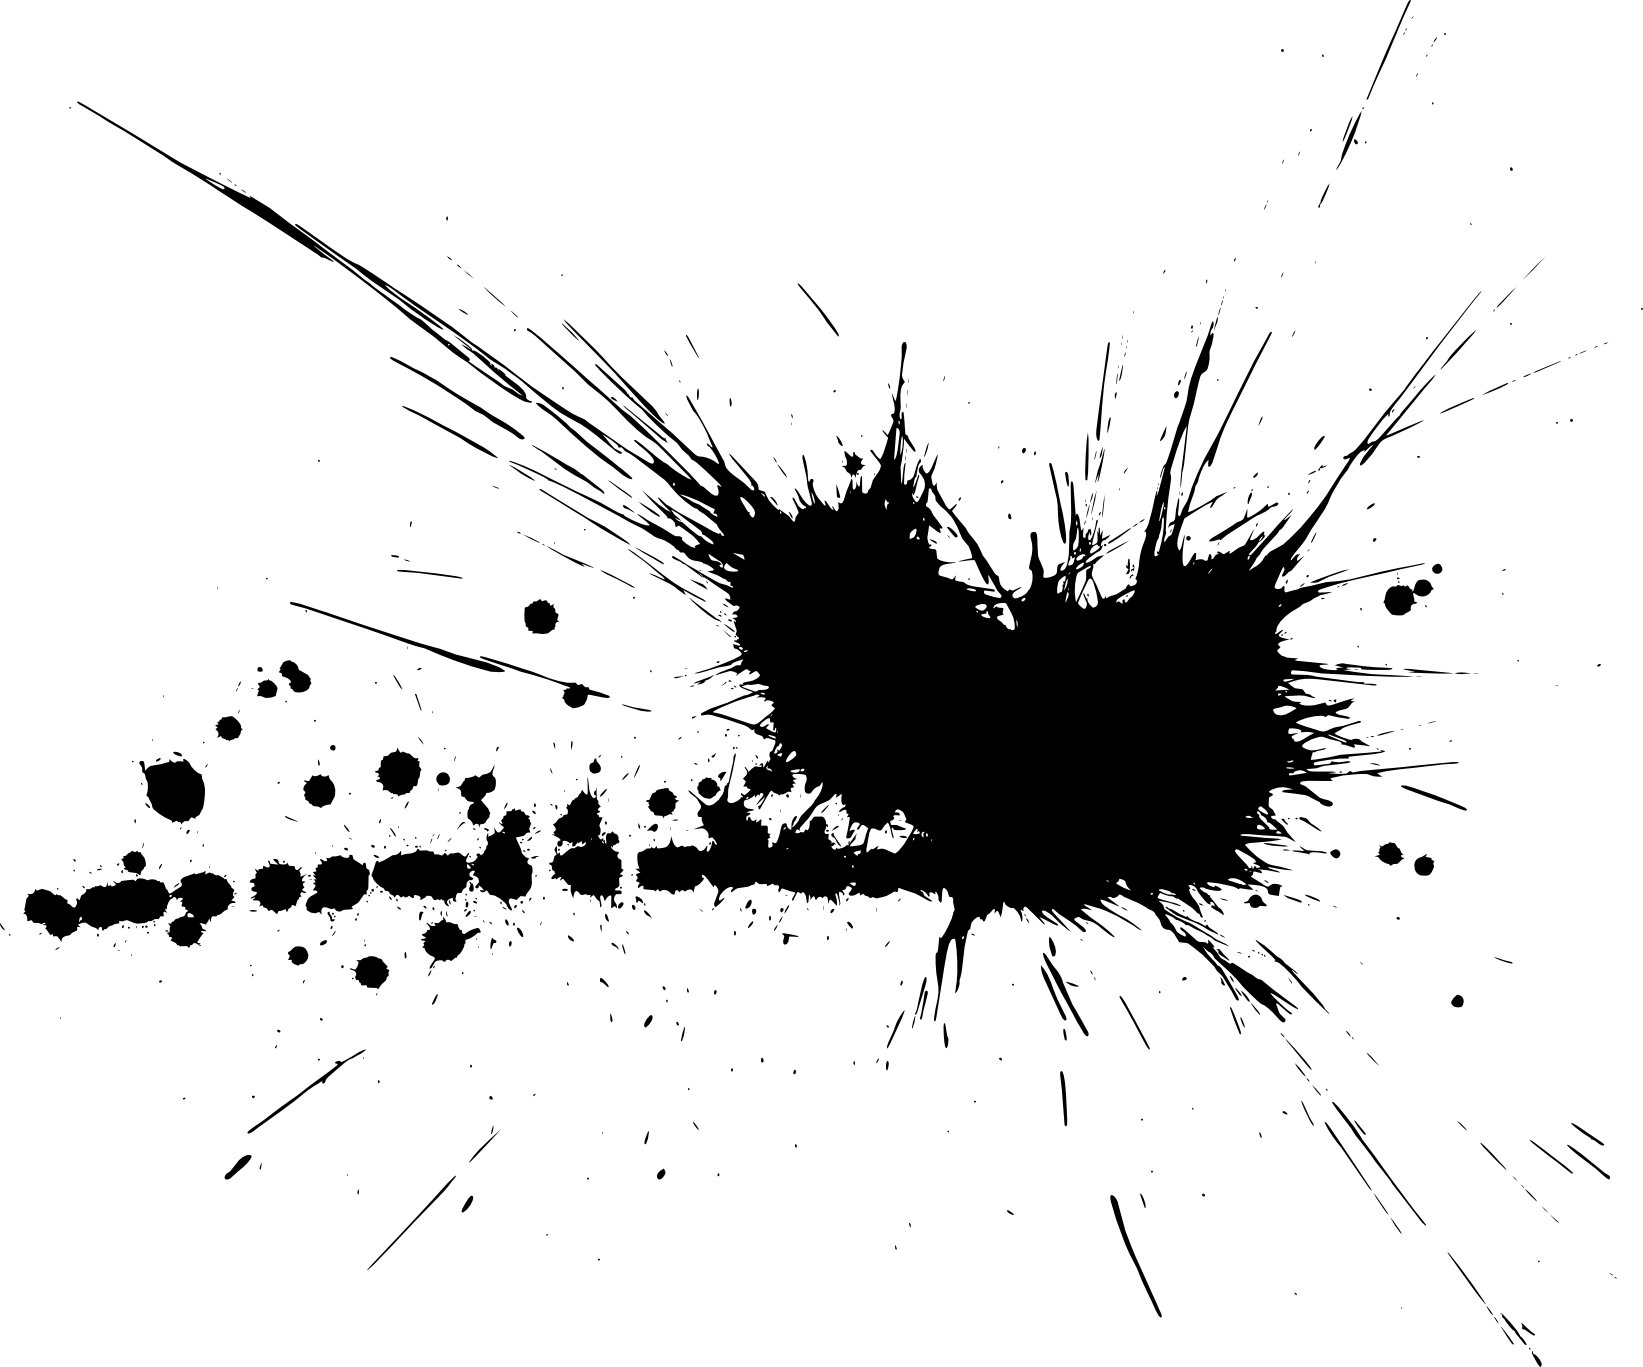 Splatter PNG Transparent Splatter.PNG Images. | PlusPNG